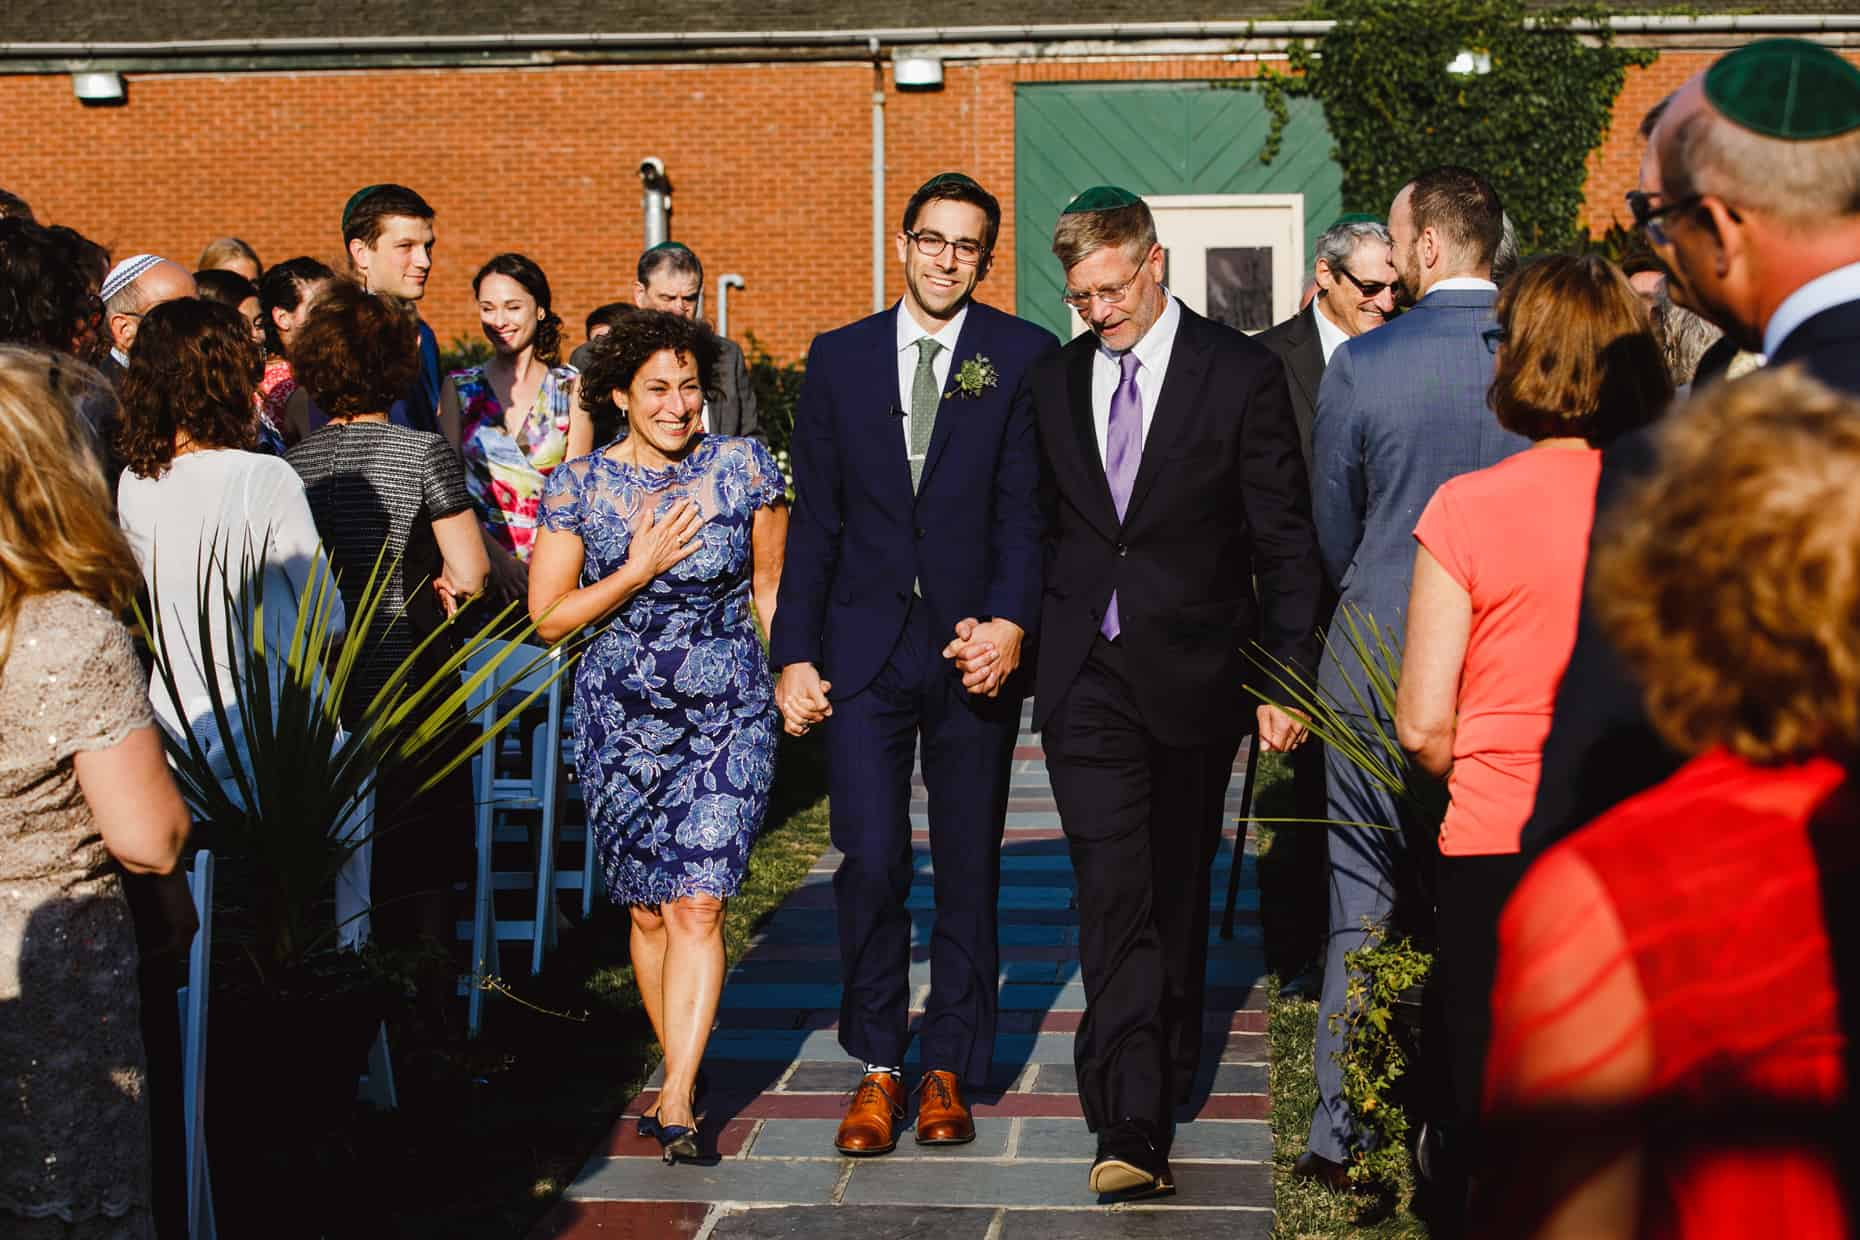 Horticultural Center Wedding Pictures